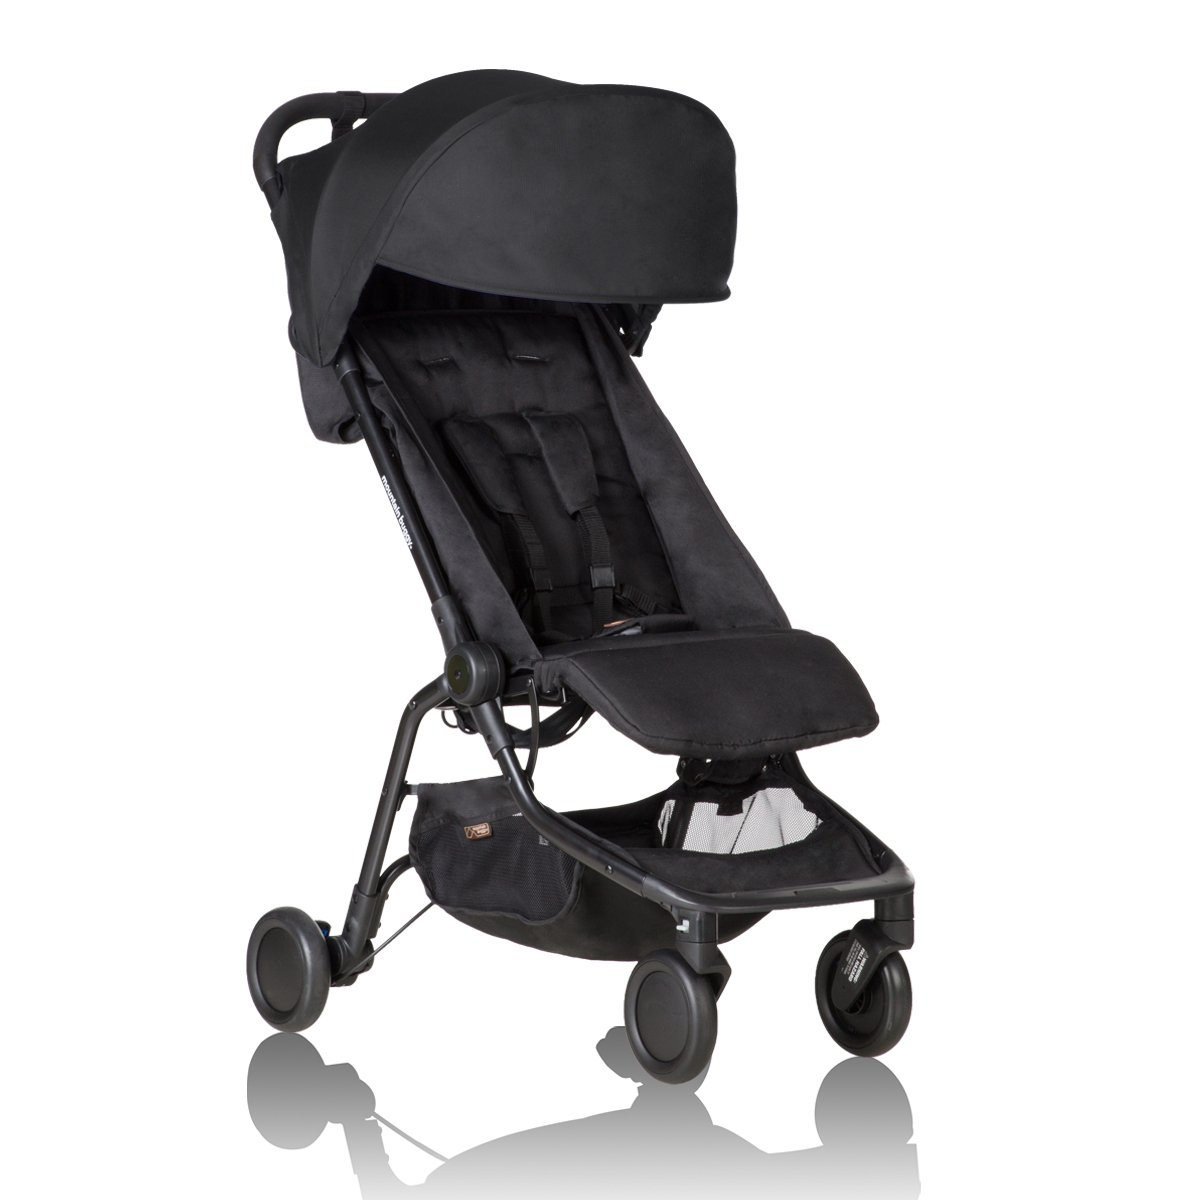 The Mountain Buggy Nano Stroller travel product recommended by Will Hatton on Lifney.